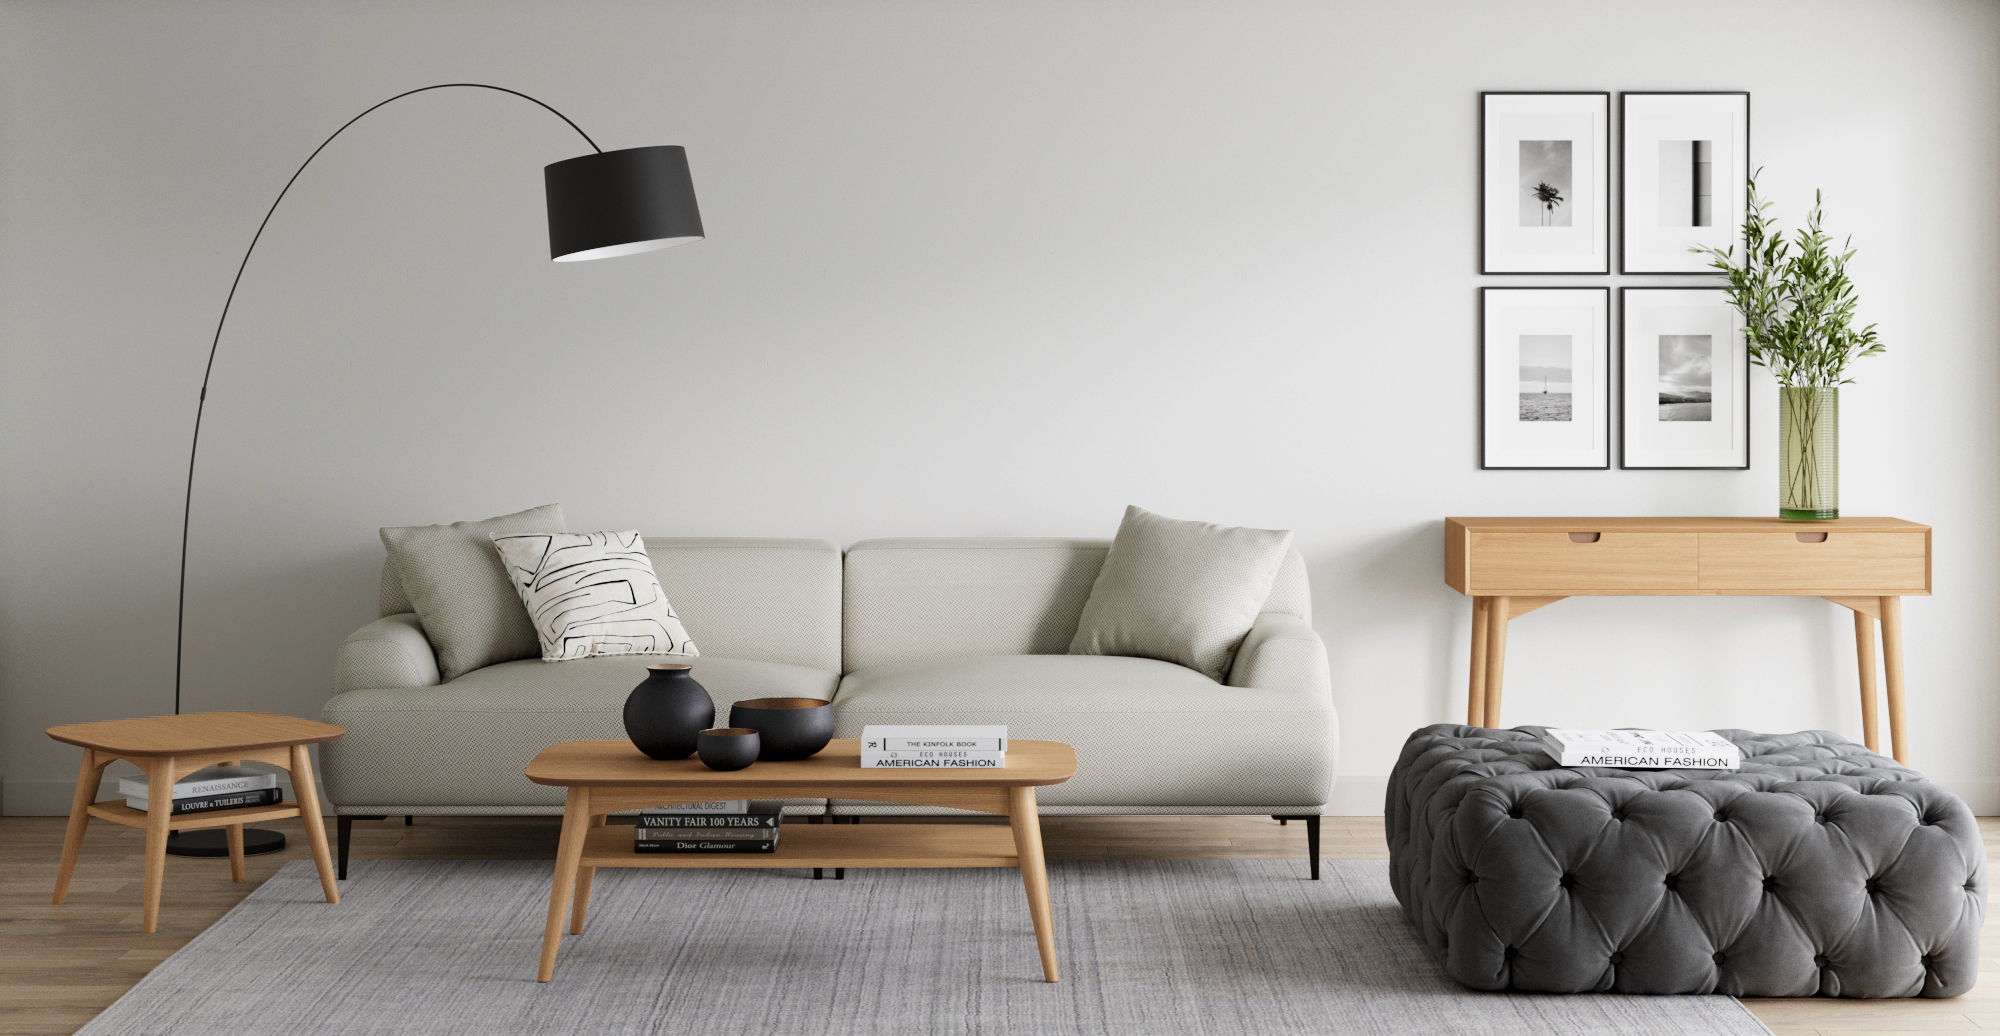 Brosa Mia Coffee Table with Shelf styled in Scandinavian living room